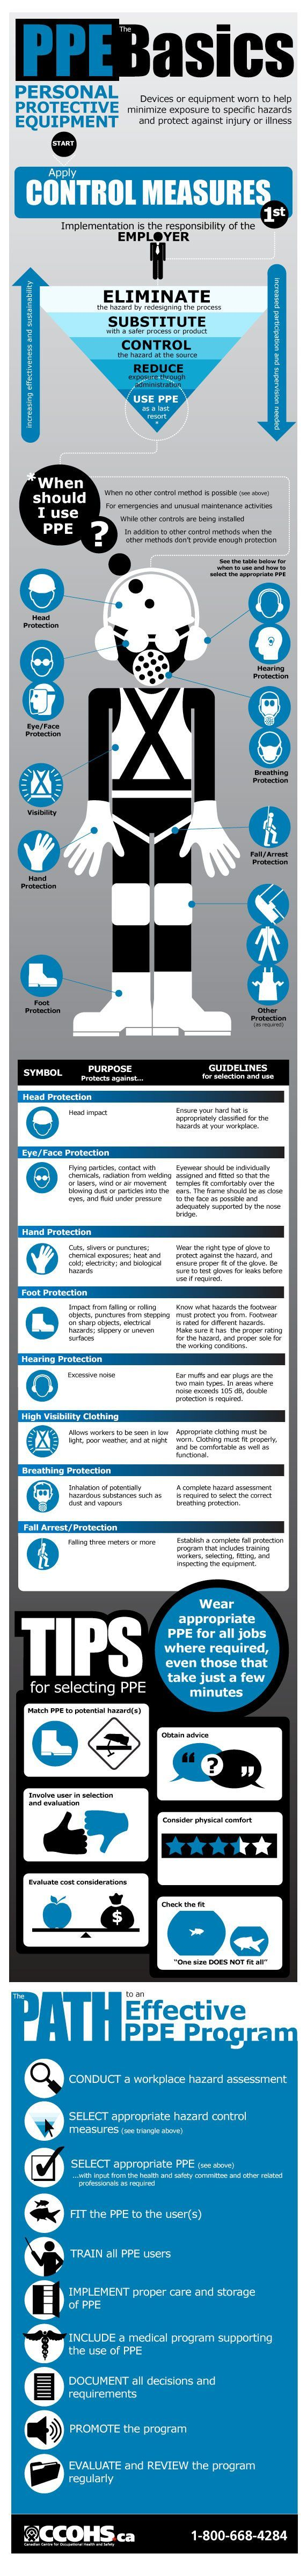 PPE Basics Occupational safety, Health and safety